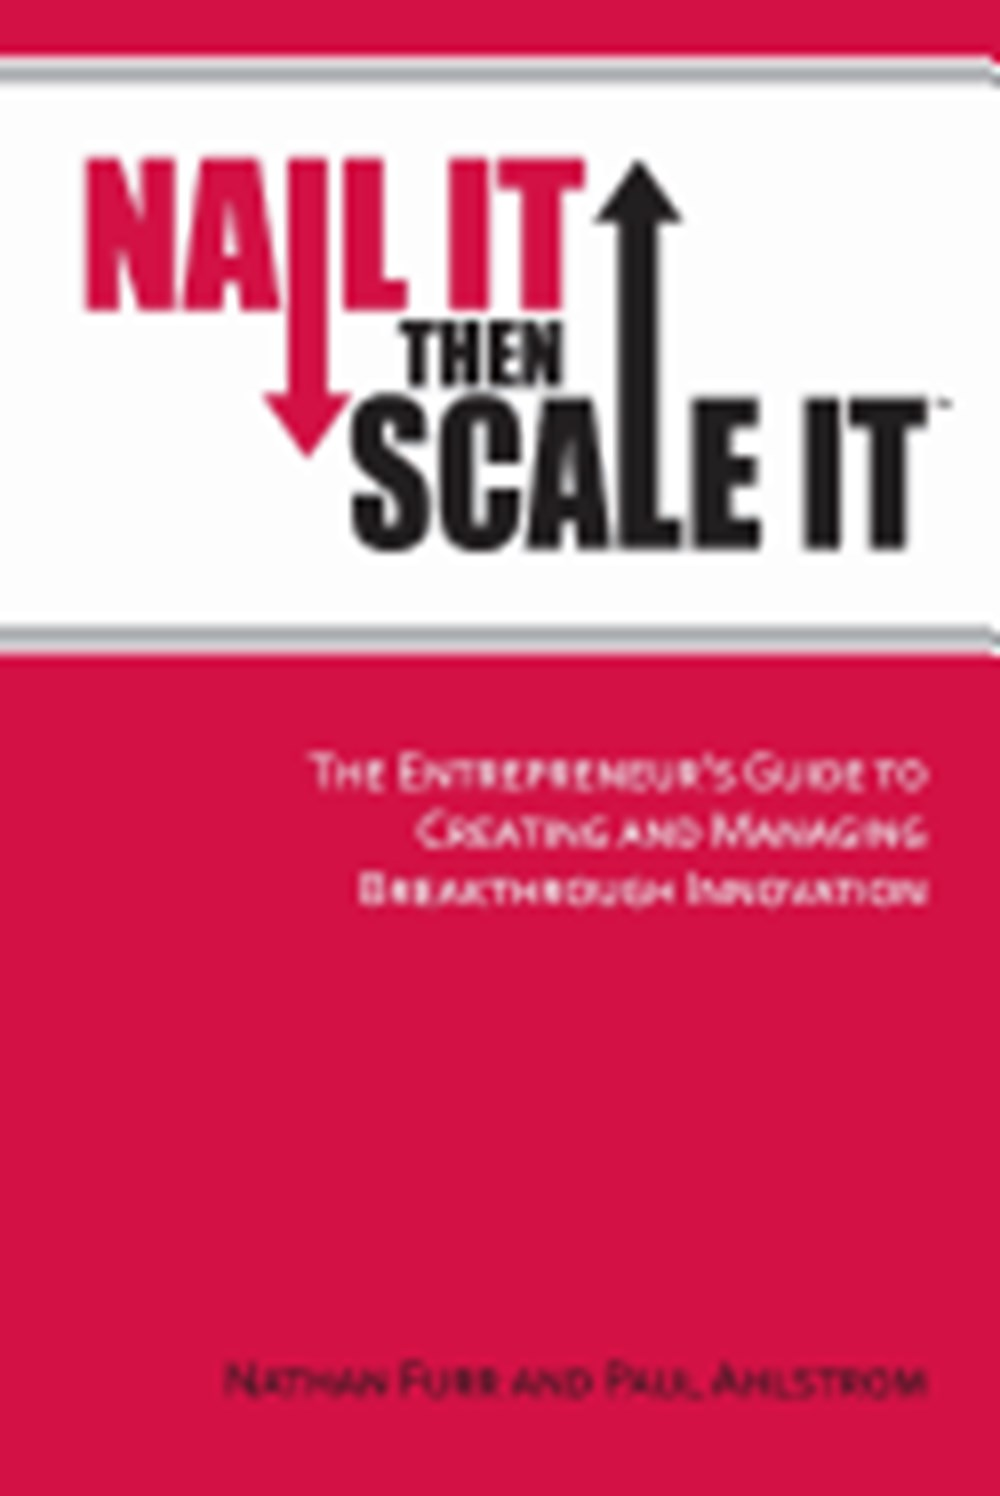 Nail It Then Scale It The Entrepreneur's Guide to Creating and Managing Breakthrough Innovation